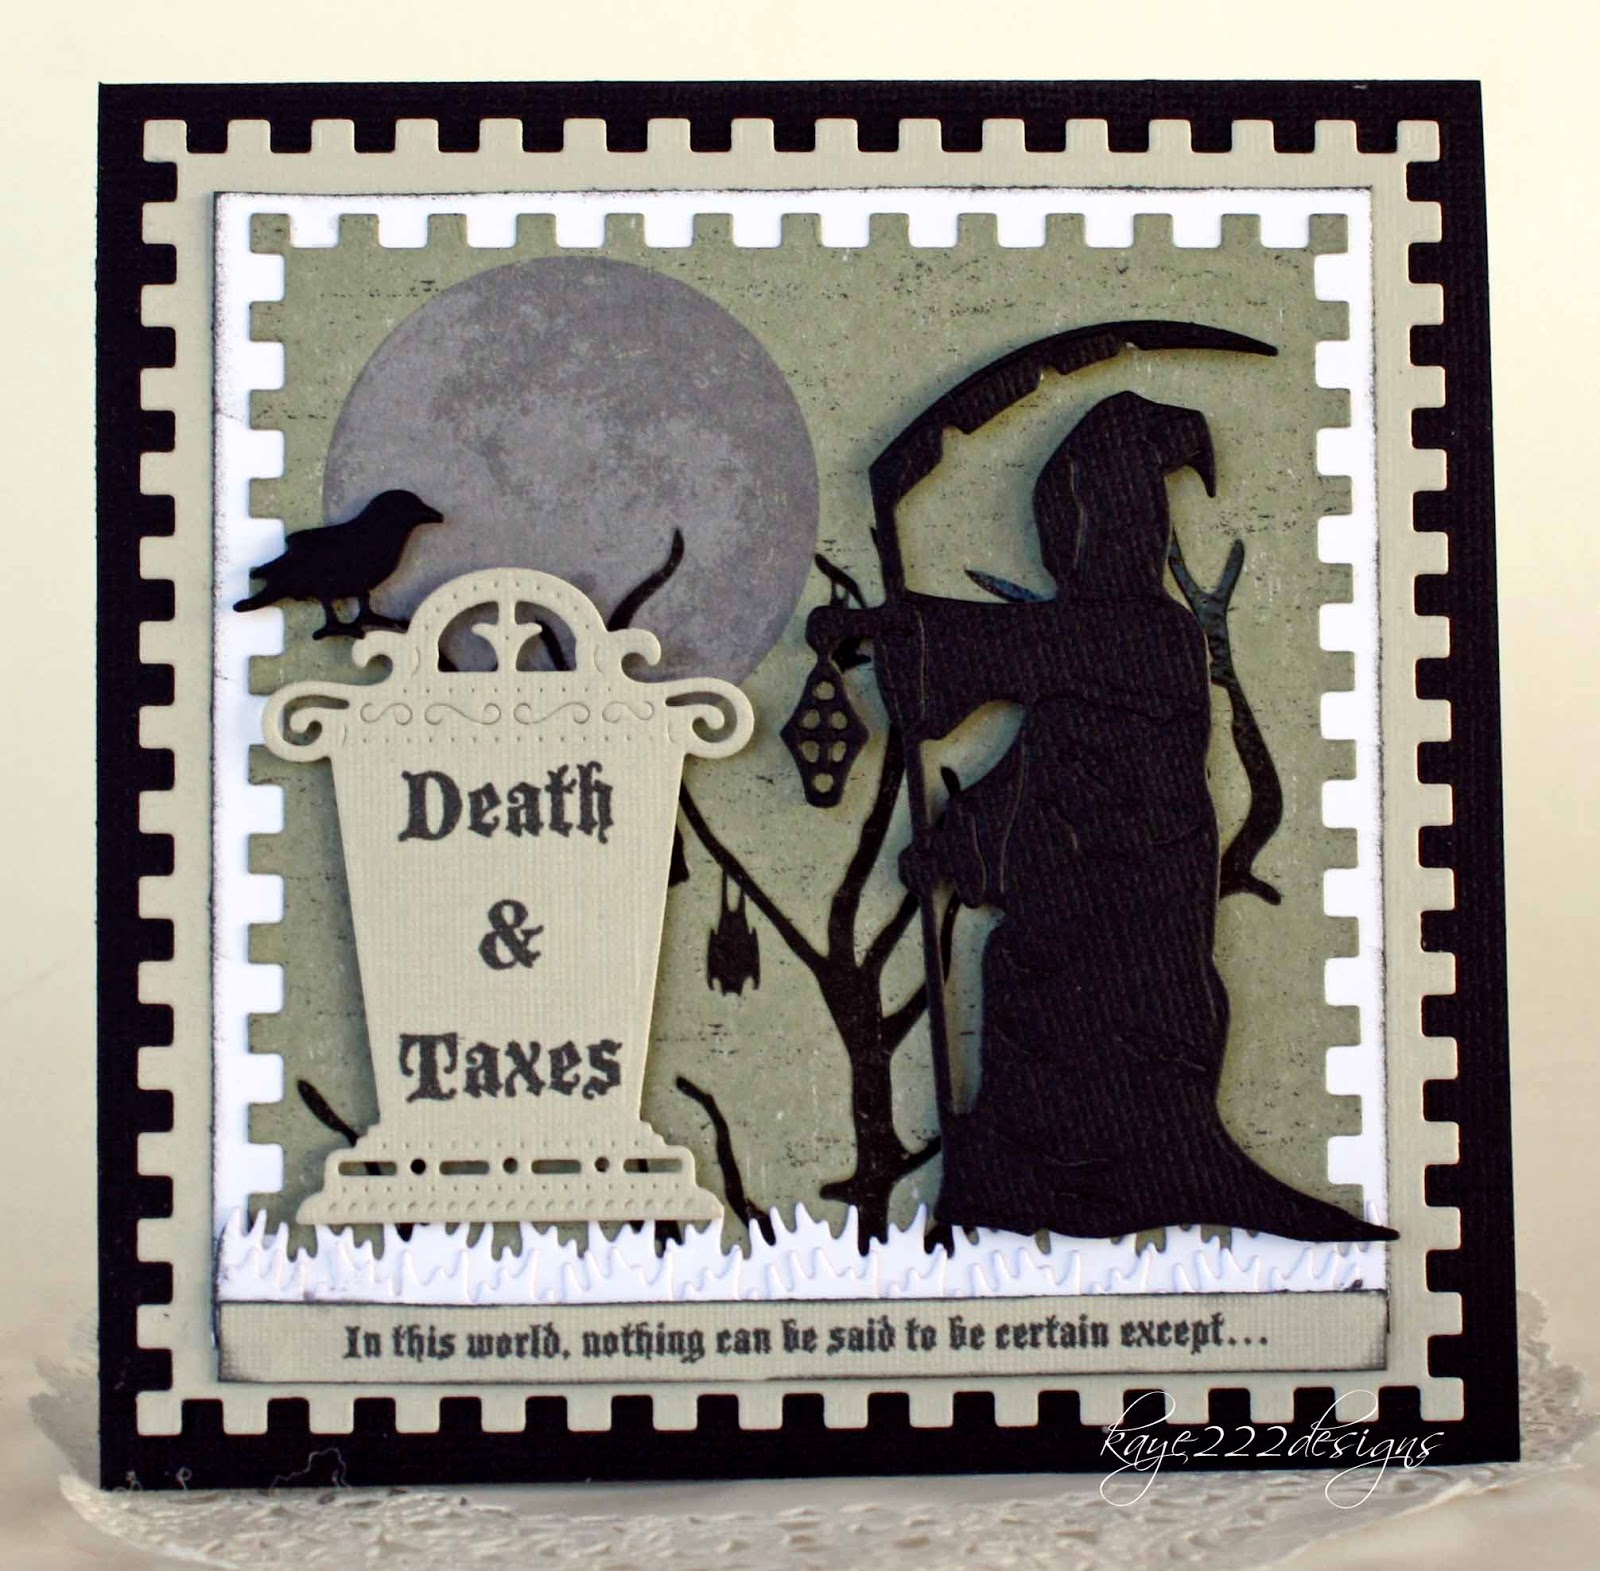 Who Said Death And Taxes Quote: Death & Taxes With Lisa Blastick